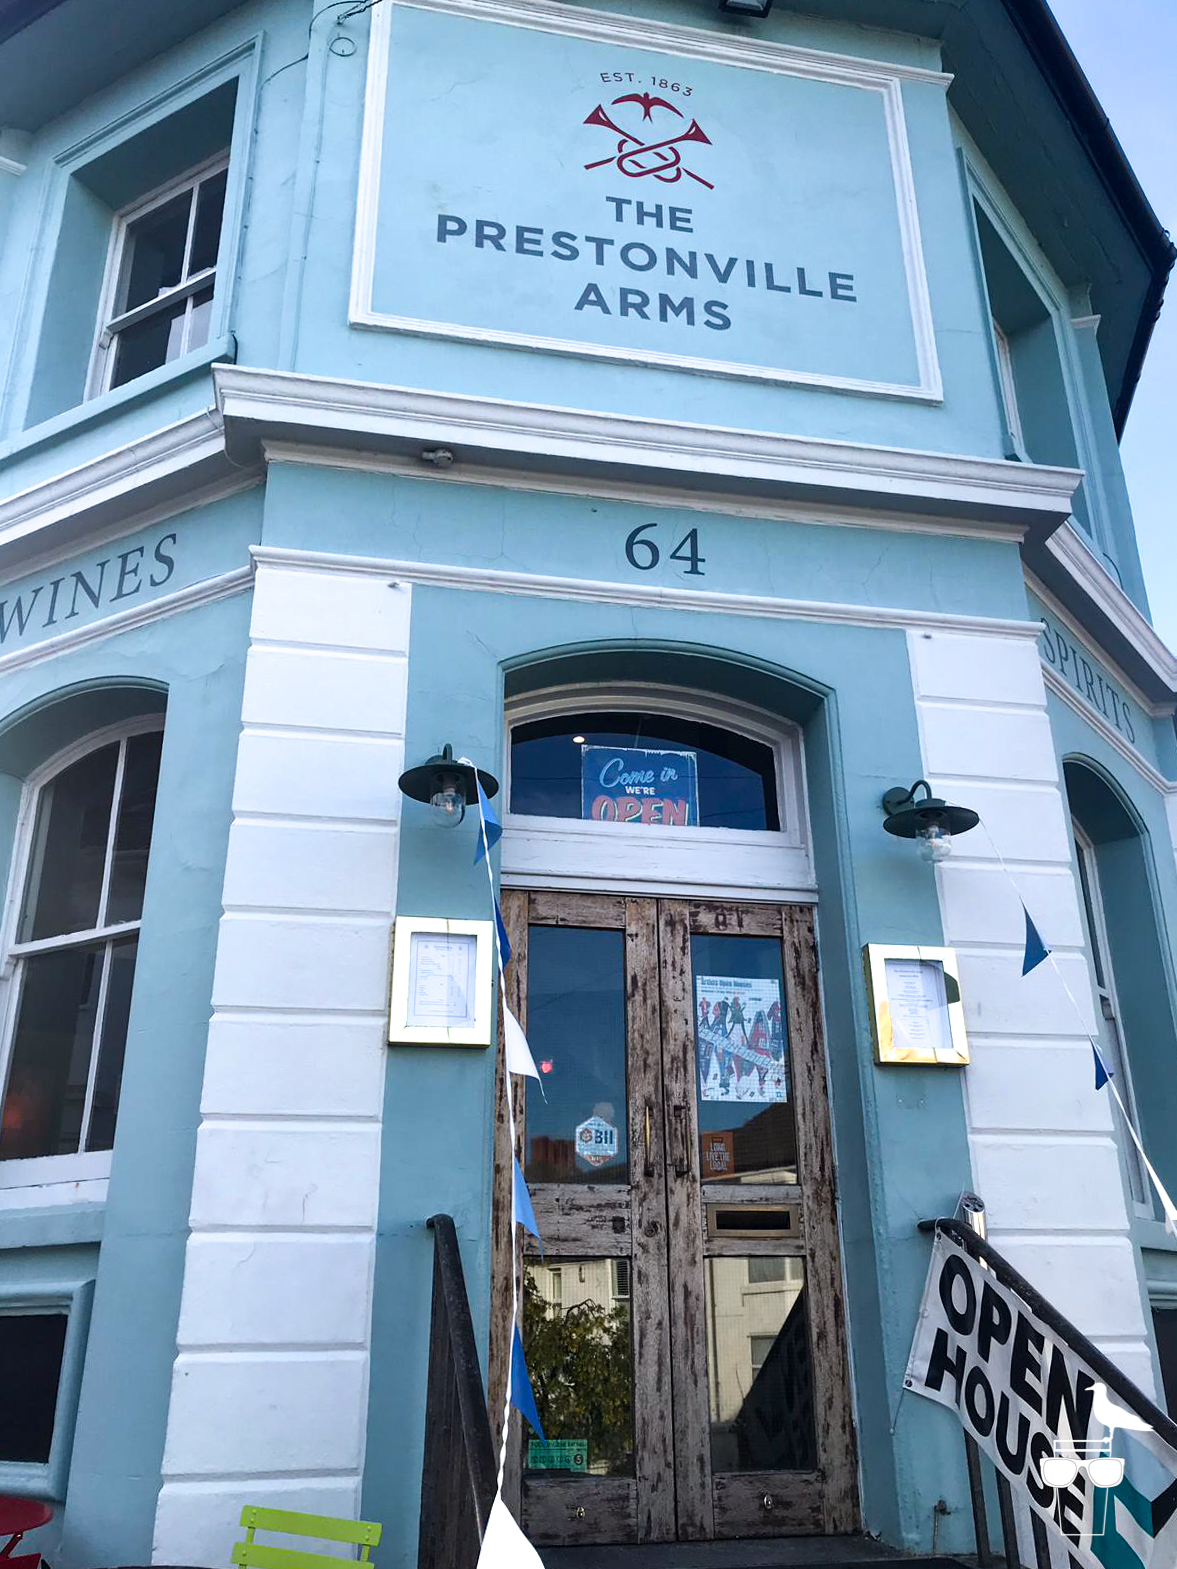 Prestonville Arms 16 May 2019-6